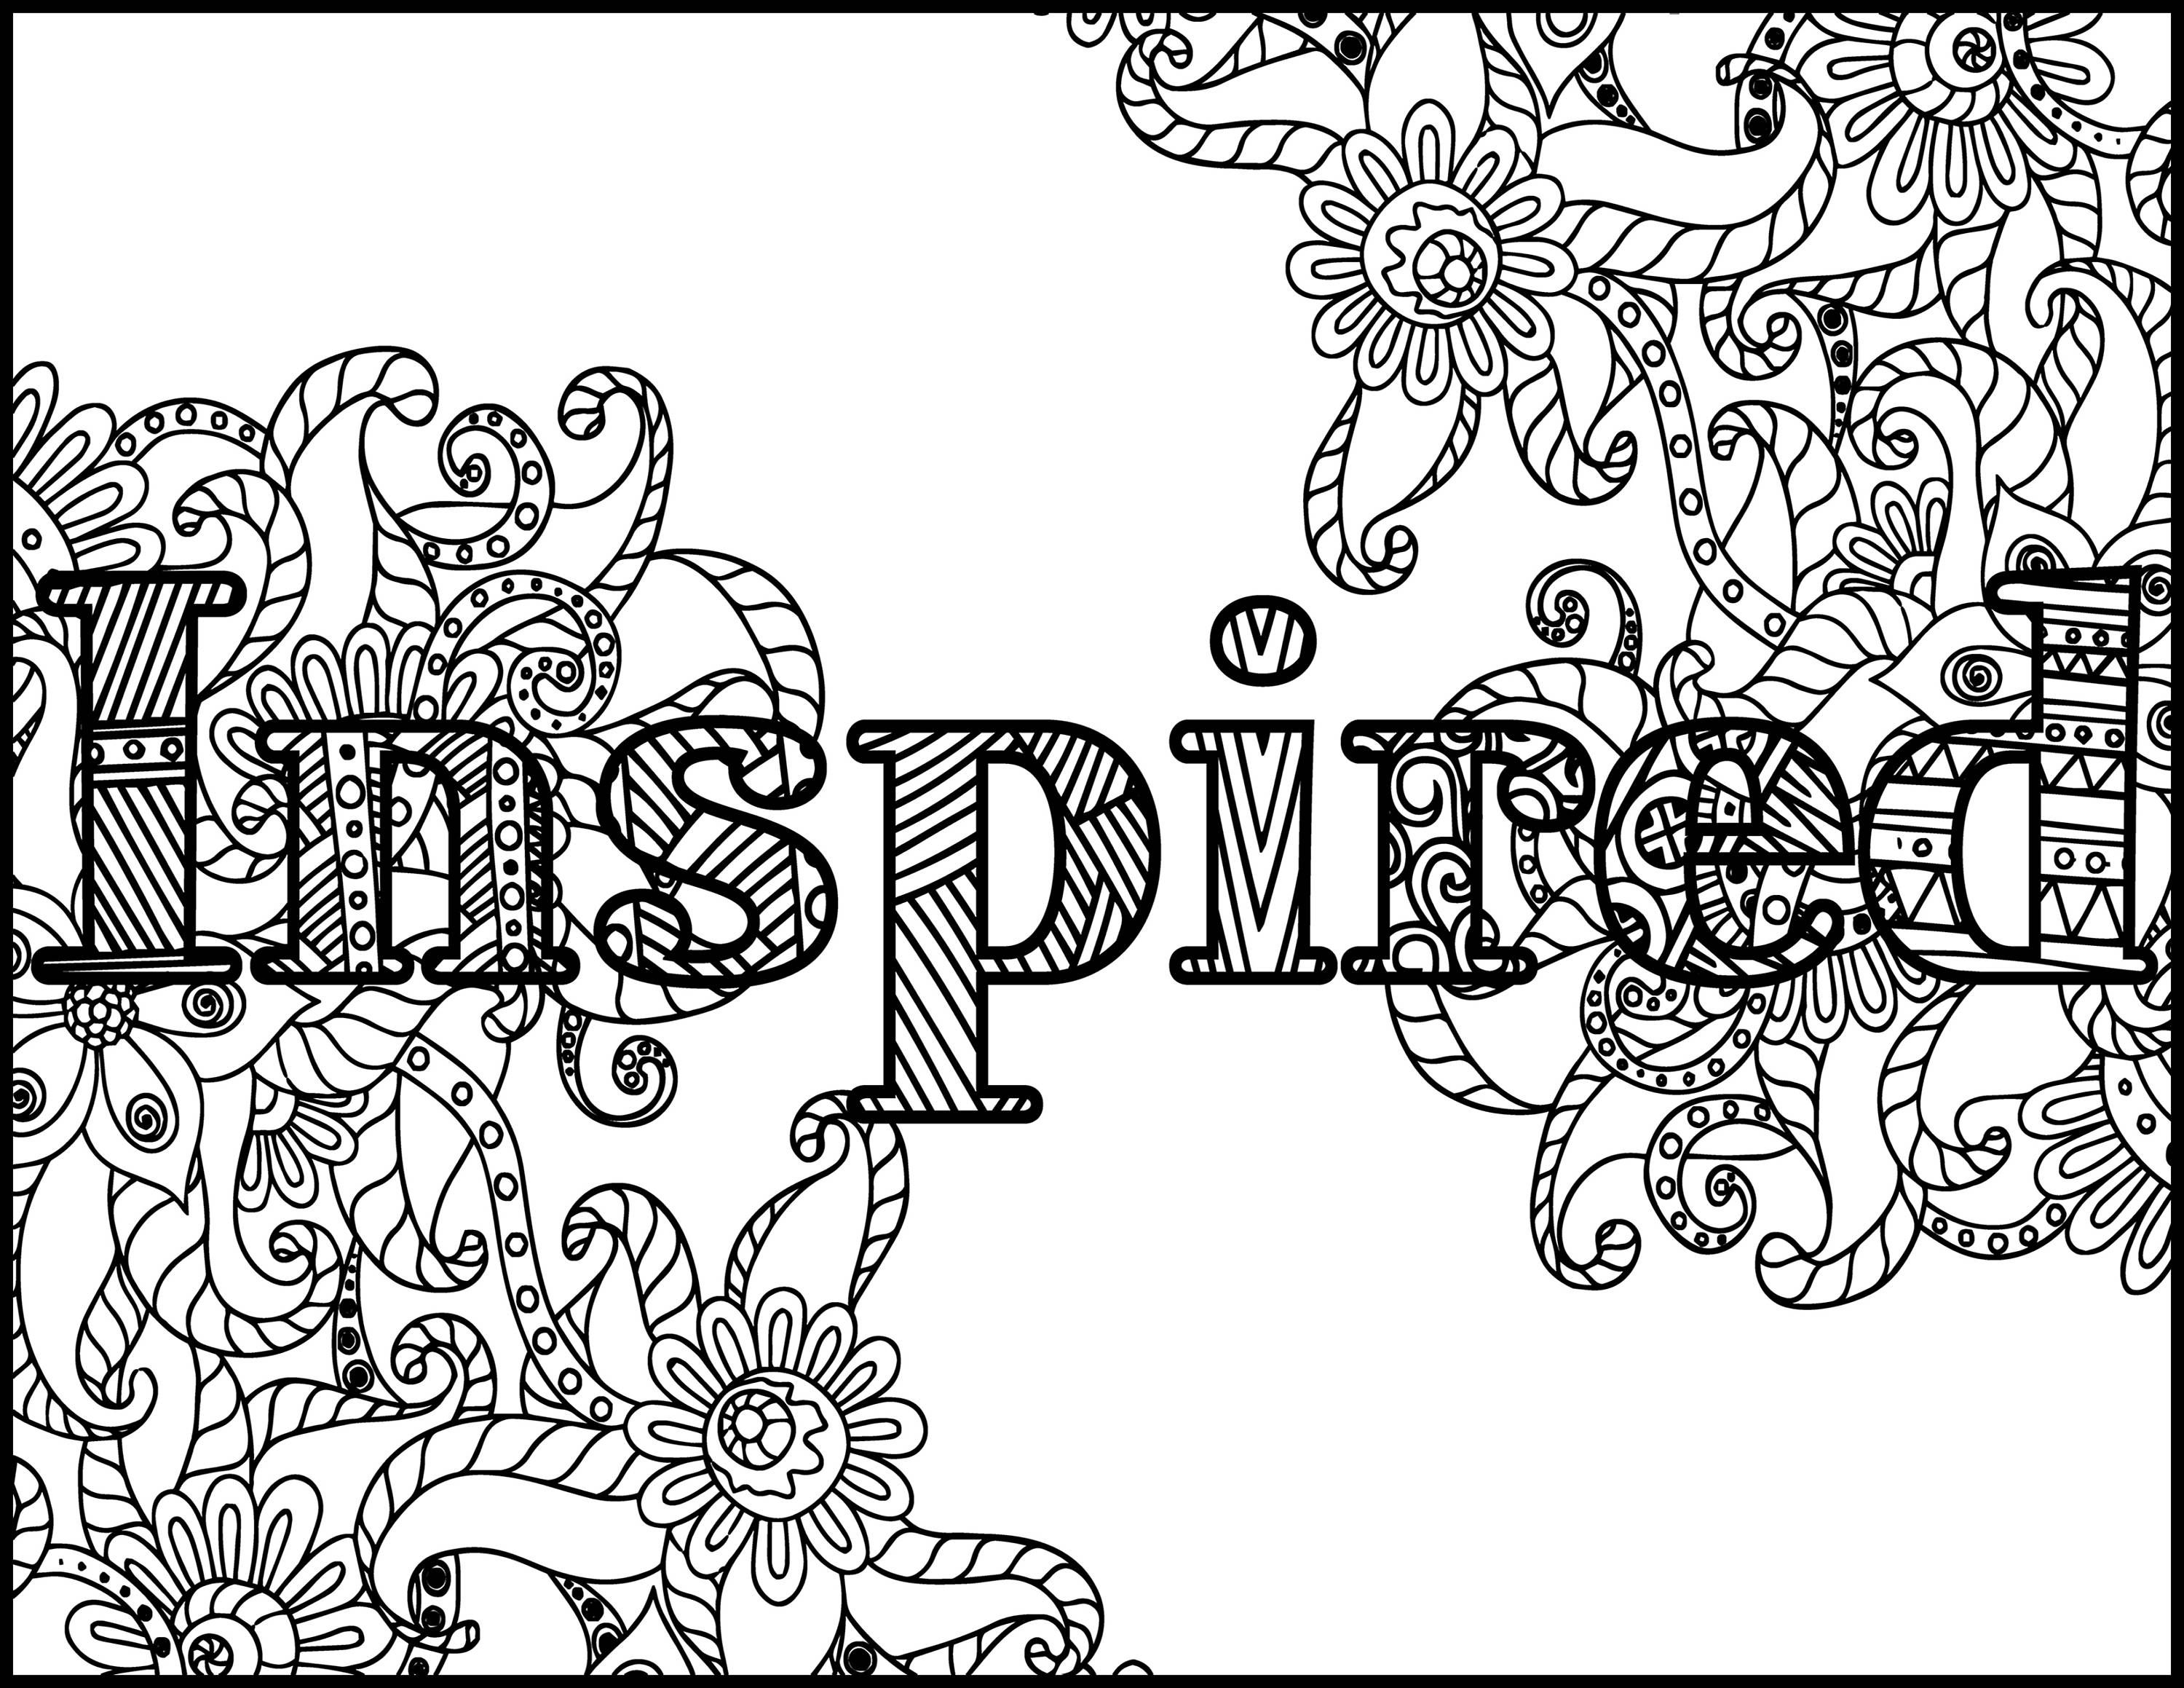 Inspired Adult Coloring Page - Positive Coloring Page - Coloring for ...